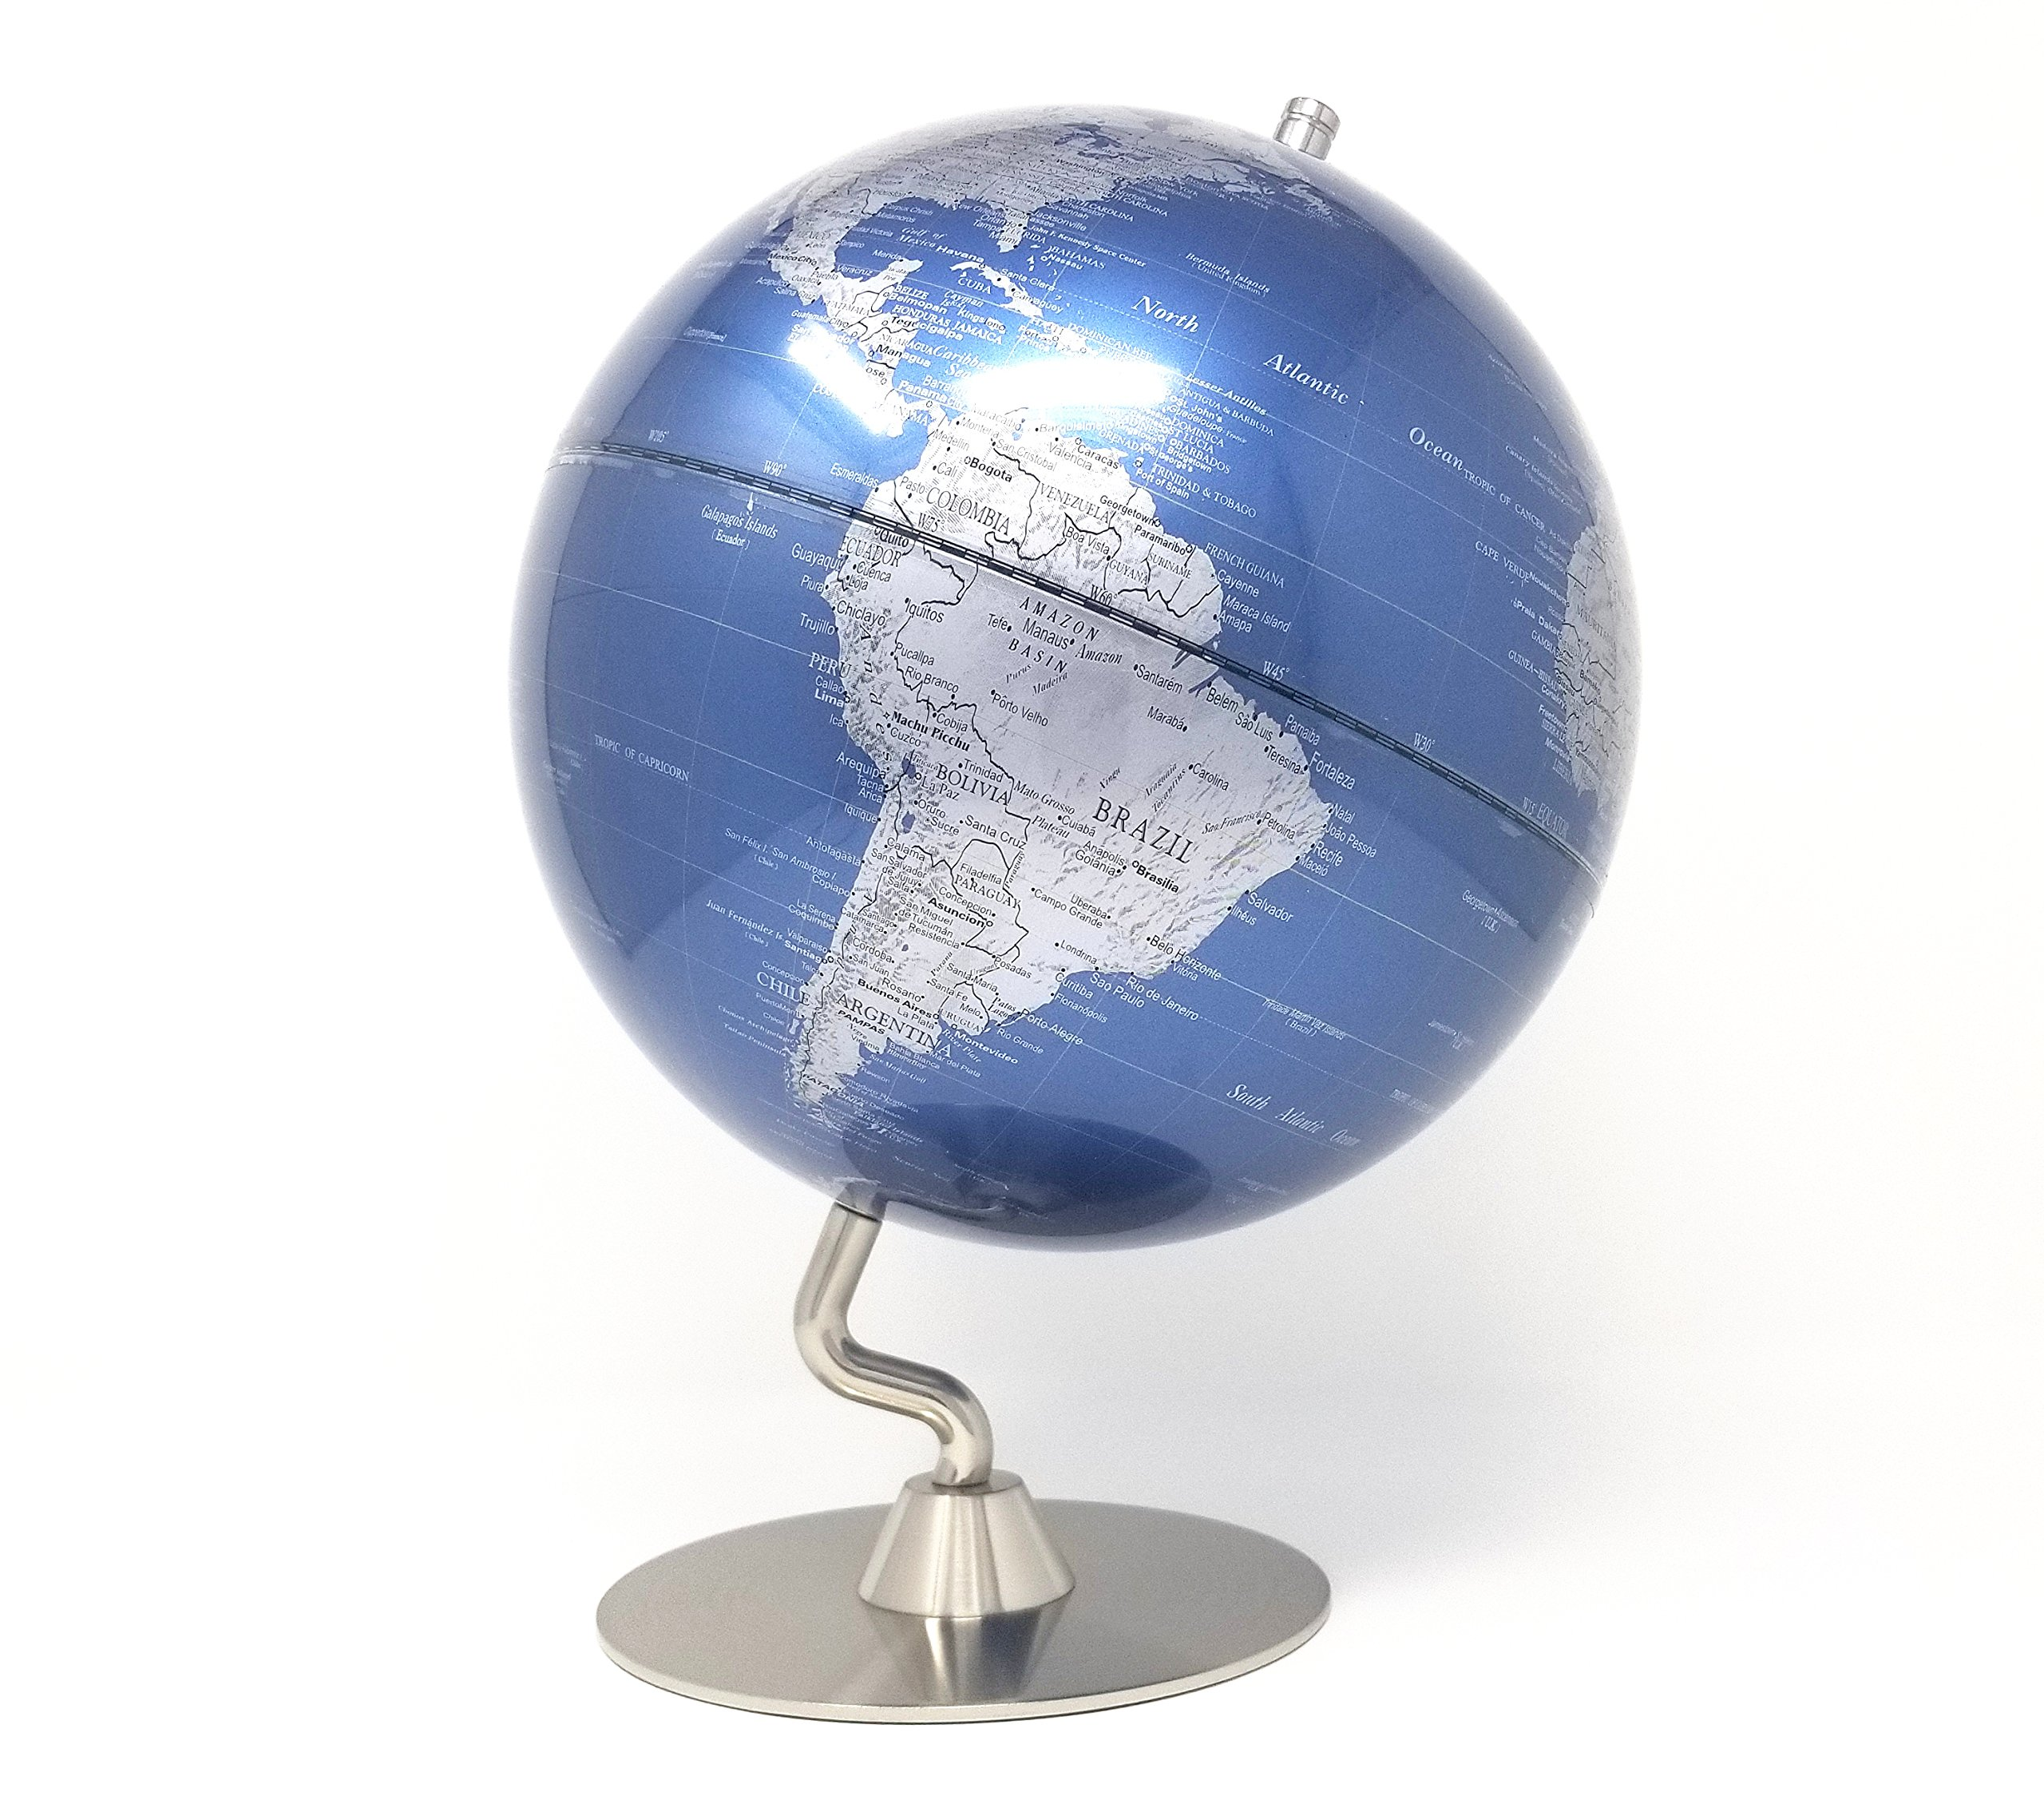 Metallic Premium Decorative Modern Home Office Desk Globe with Chrome Polished Metal Base for Home Décor and Educational Globe (Blue Ocean 10'' Diameter)